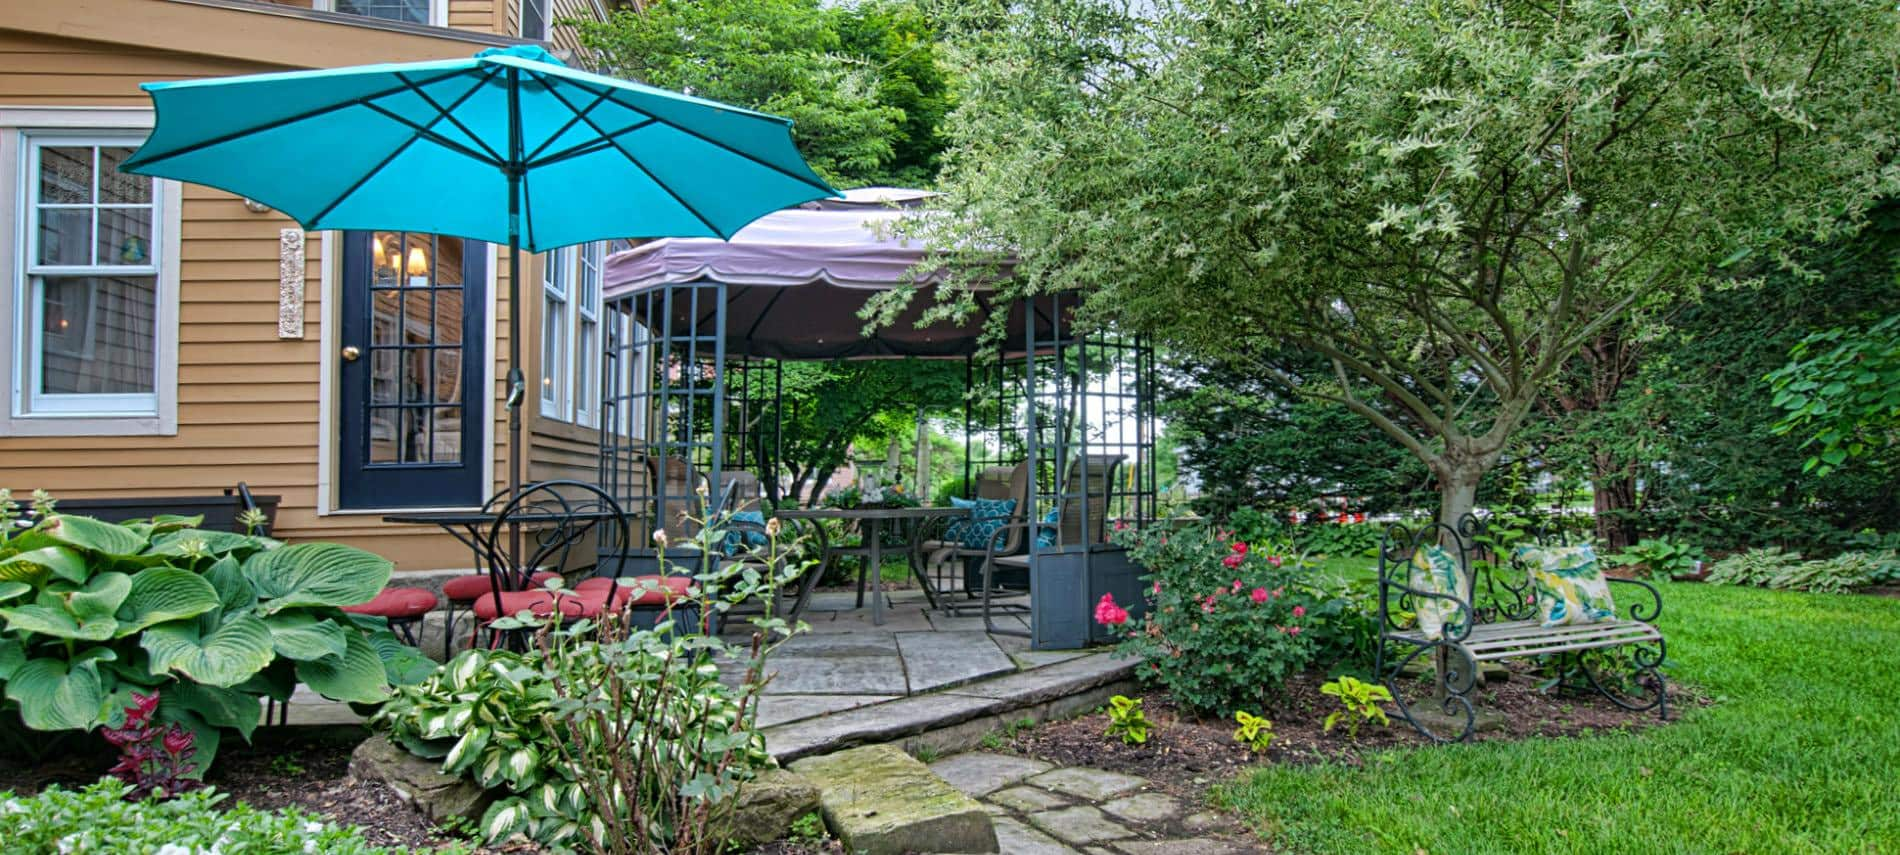 Rear patio with umbrella tables and chairs surrounded by lush green grass, plants and trees